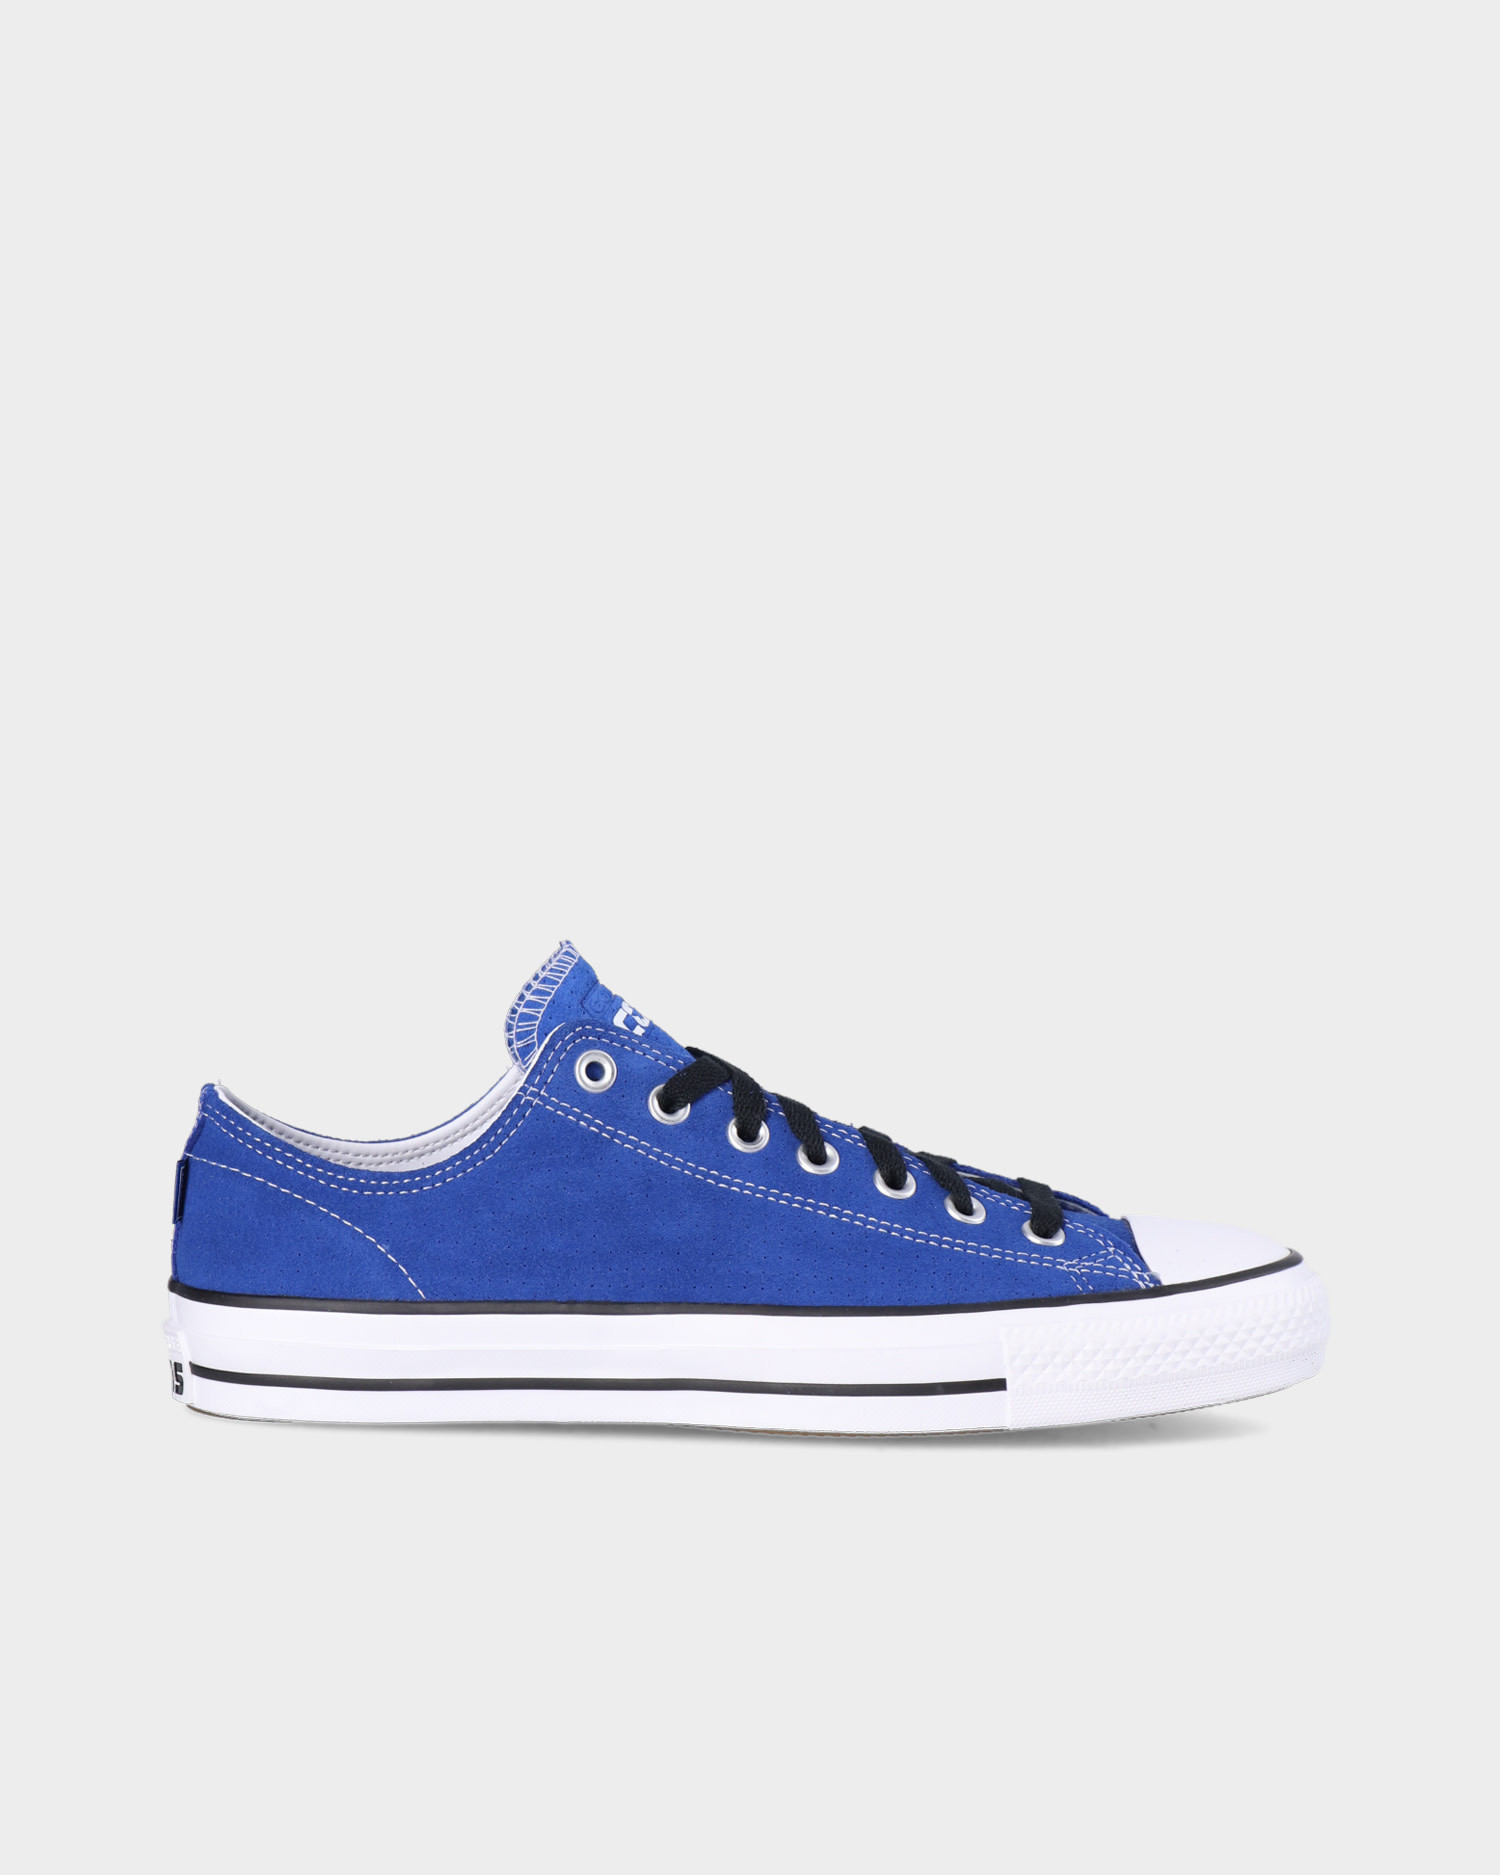 Converse Chuck Taylor All Star Pro Embossed Suede Ox Rush Blue/Black/White